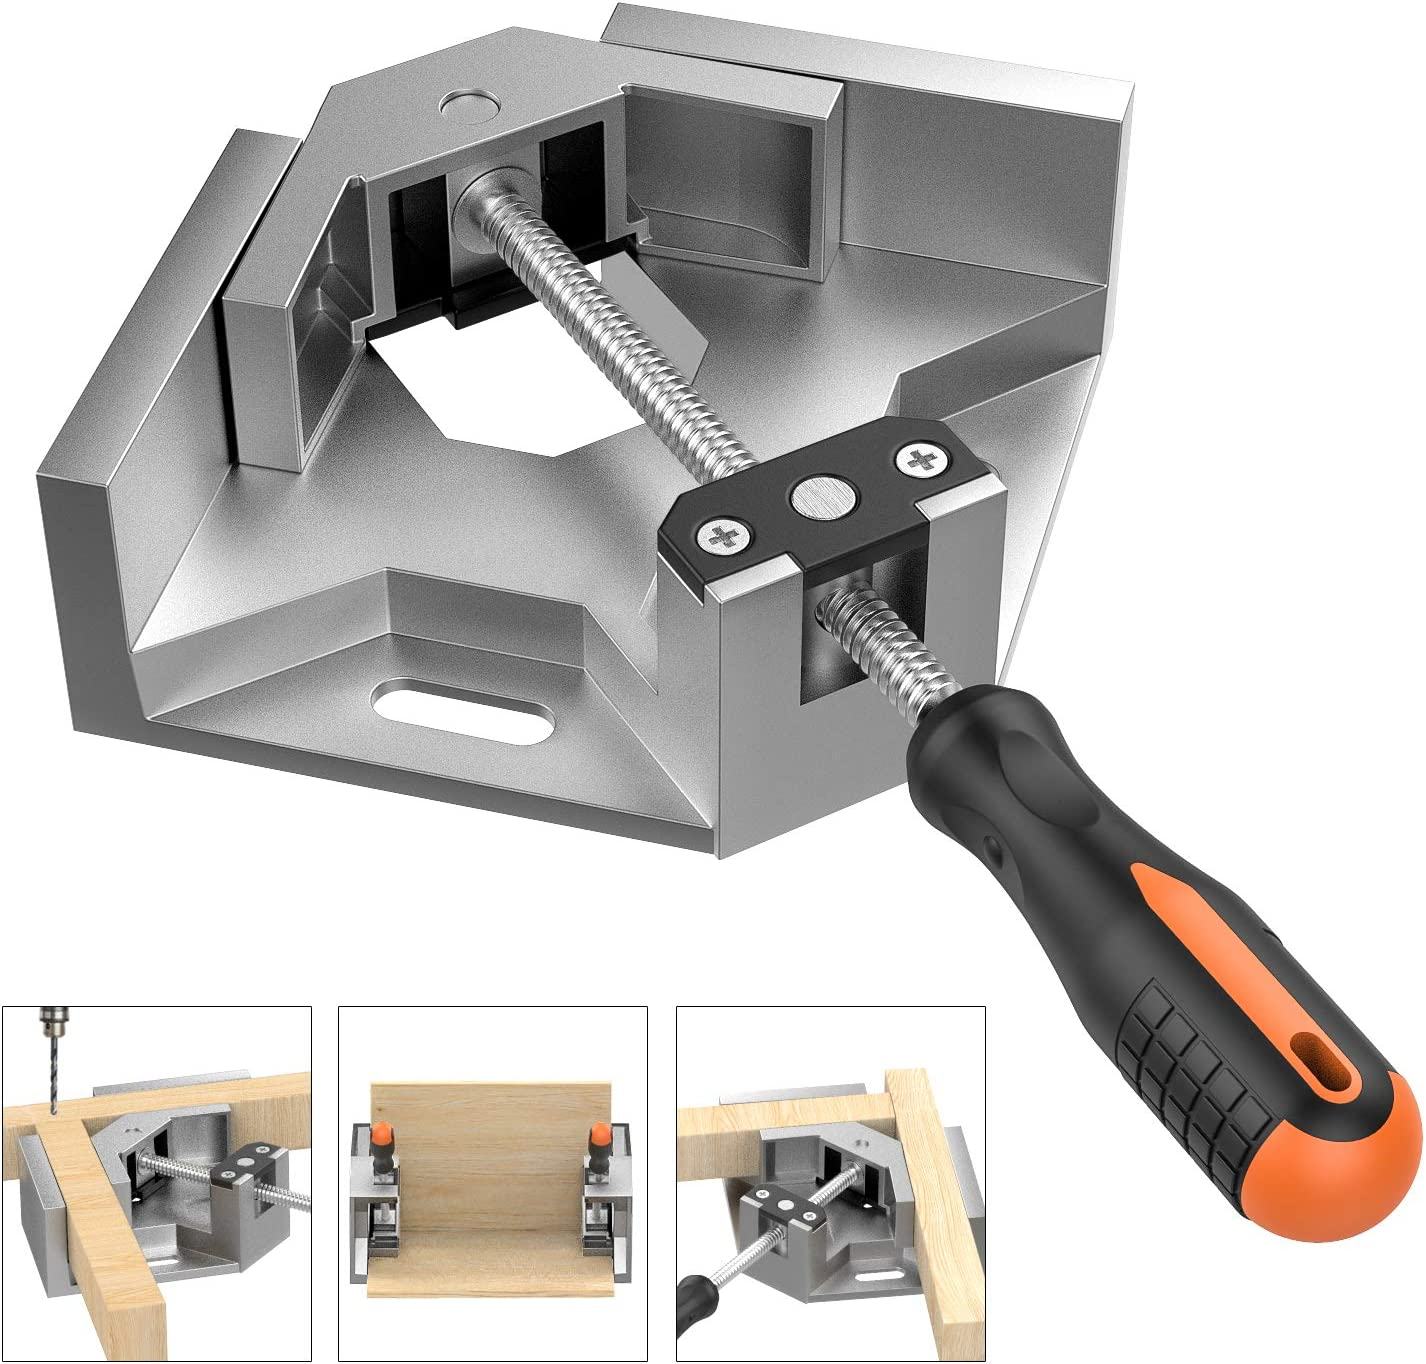 Right Angle Clamp, Housolution Single Handle 90° Aluminum Alloy Corner Clamp, Right Angle Clip Clamp Tool Woodworking Photo Frame Vise Holder with...